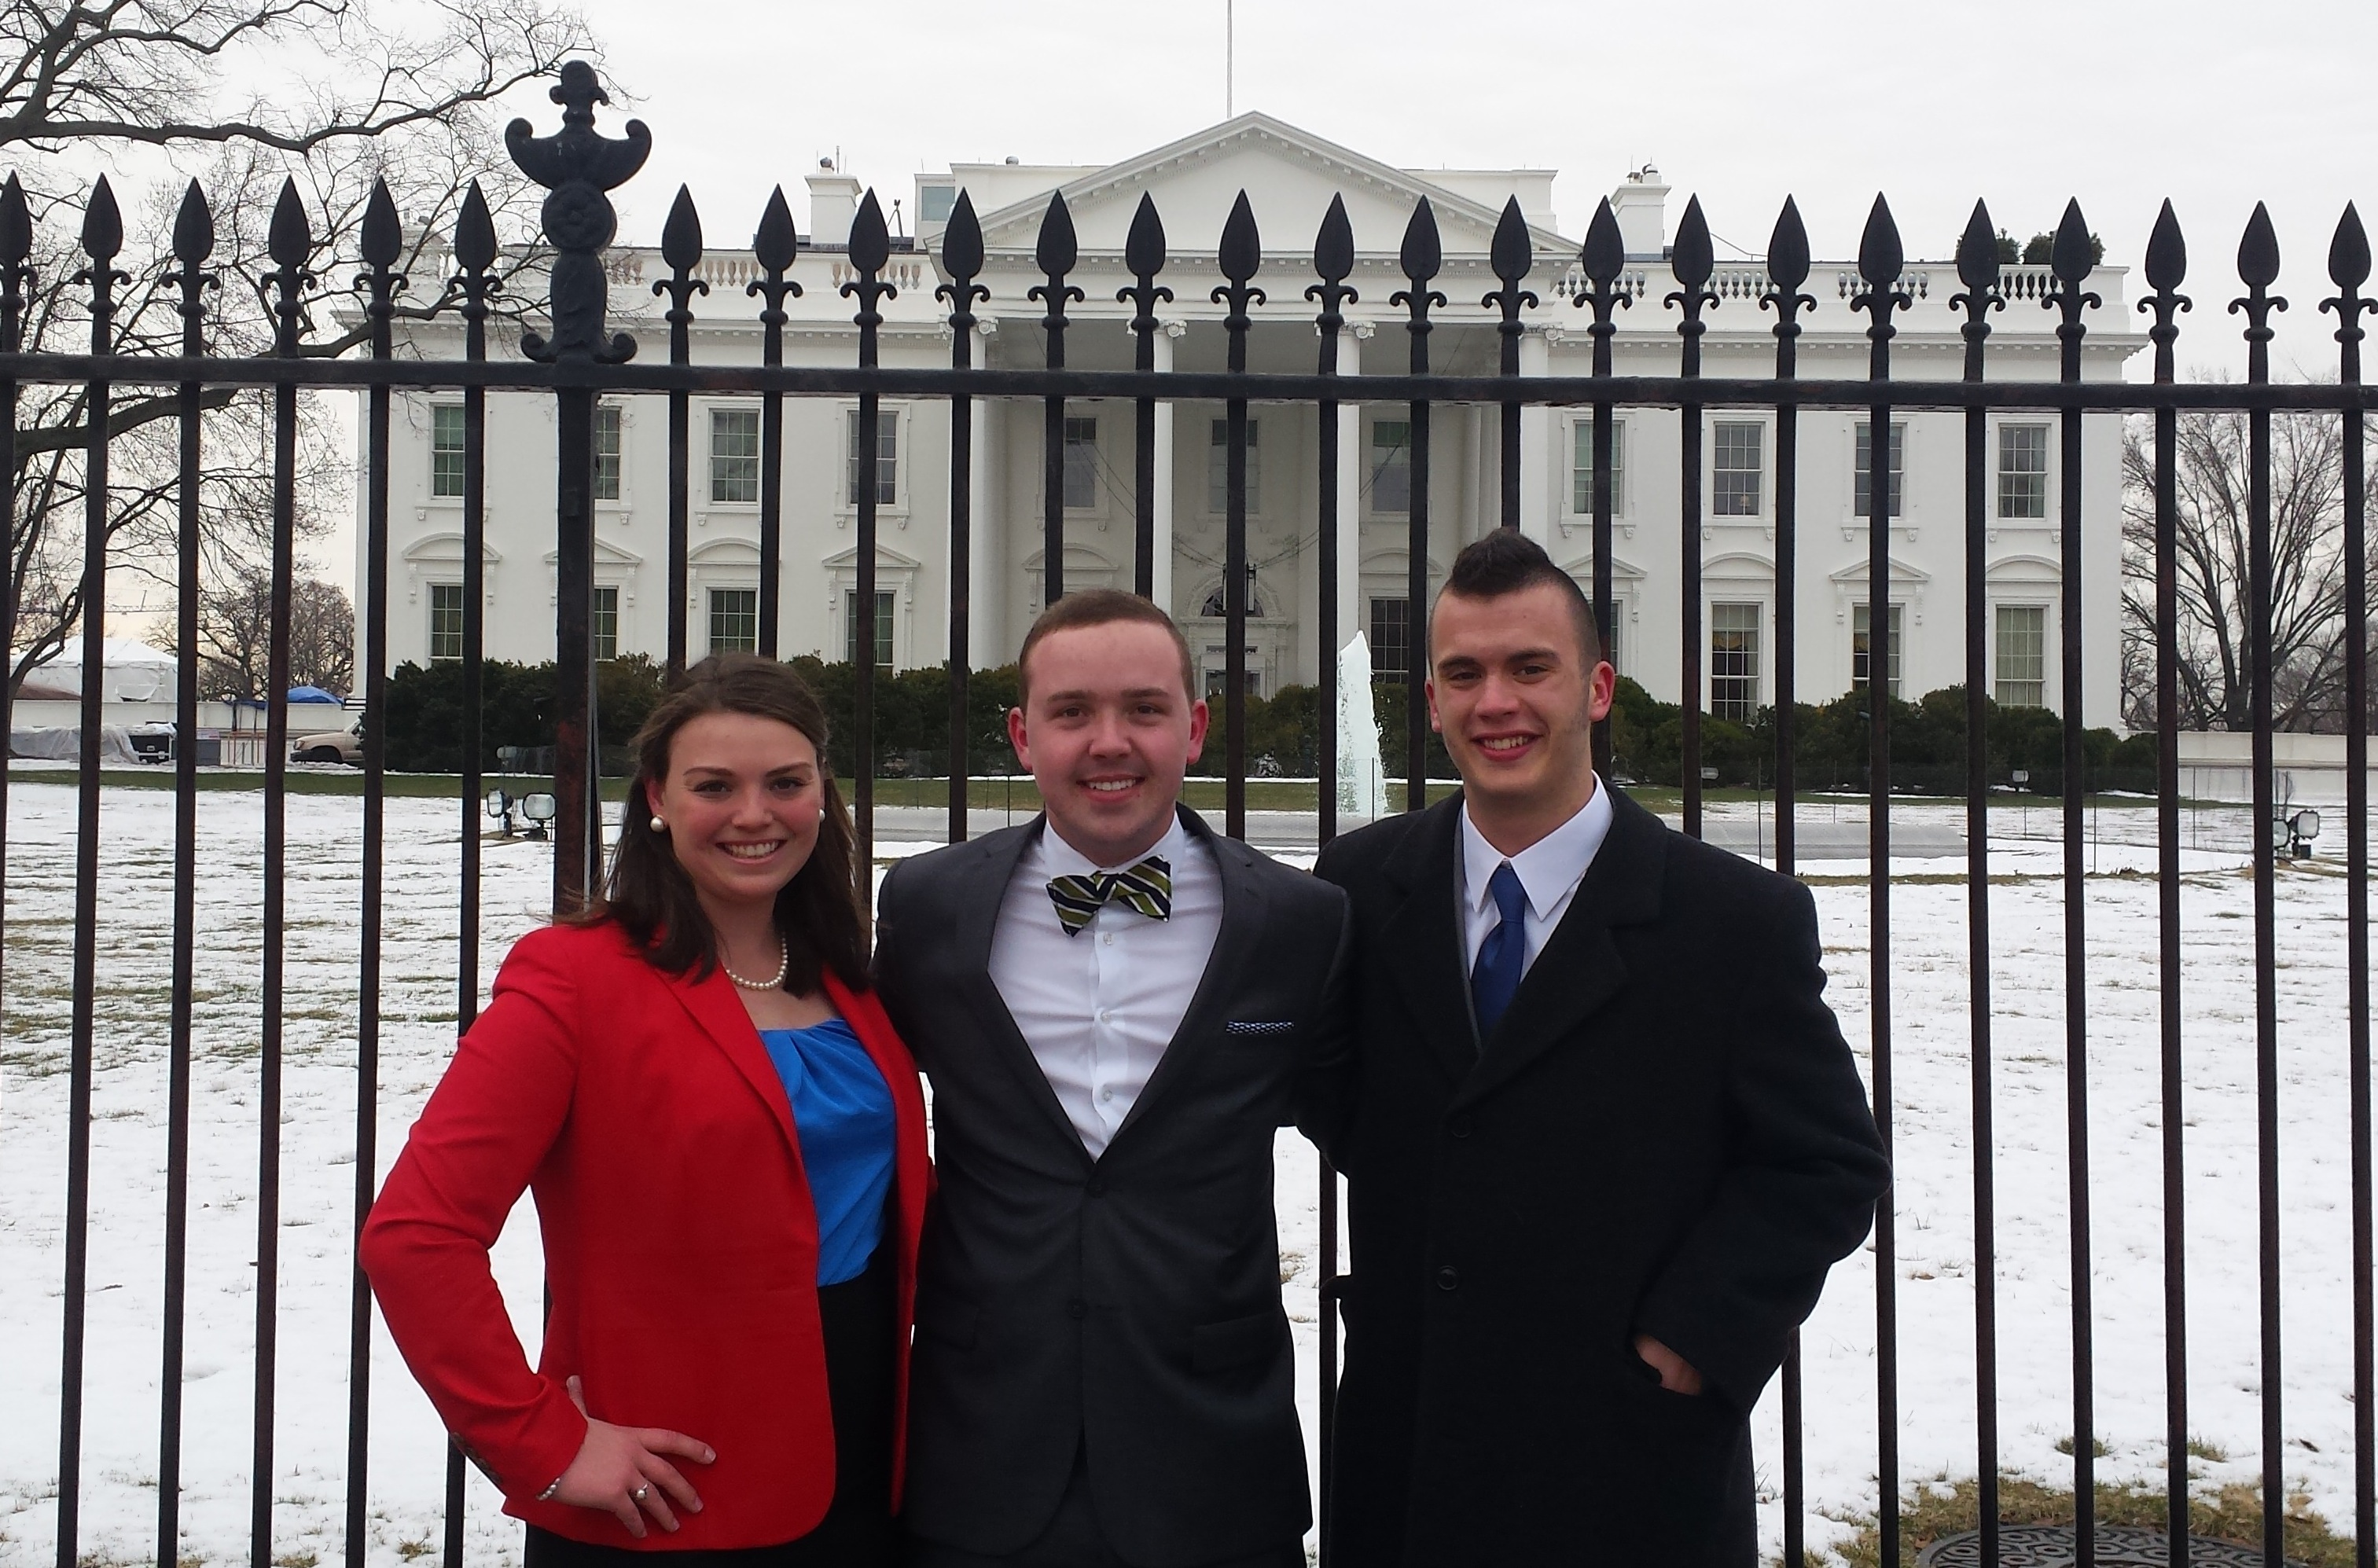 Sarah McKay, Austin Larrowe, and Wes Williams in Washington, D.C.